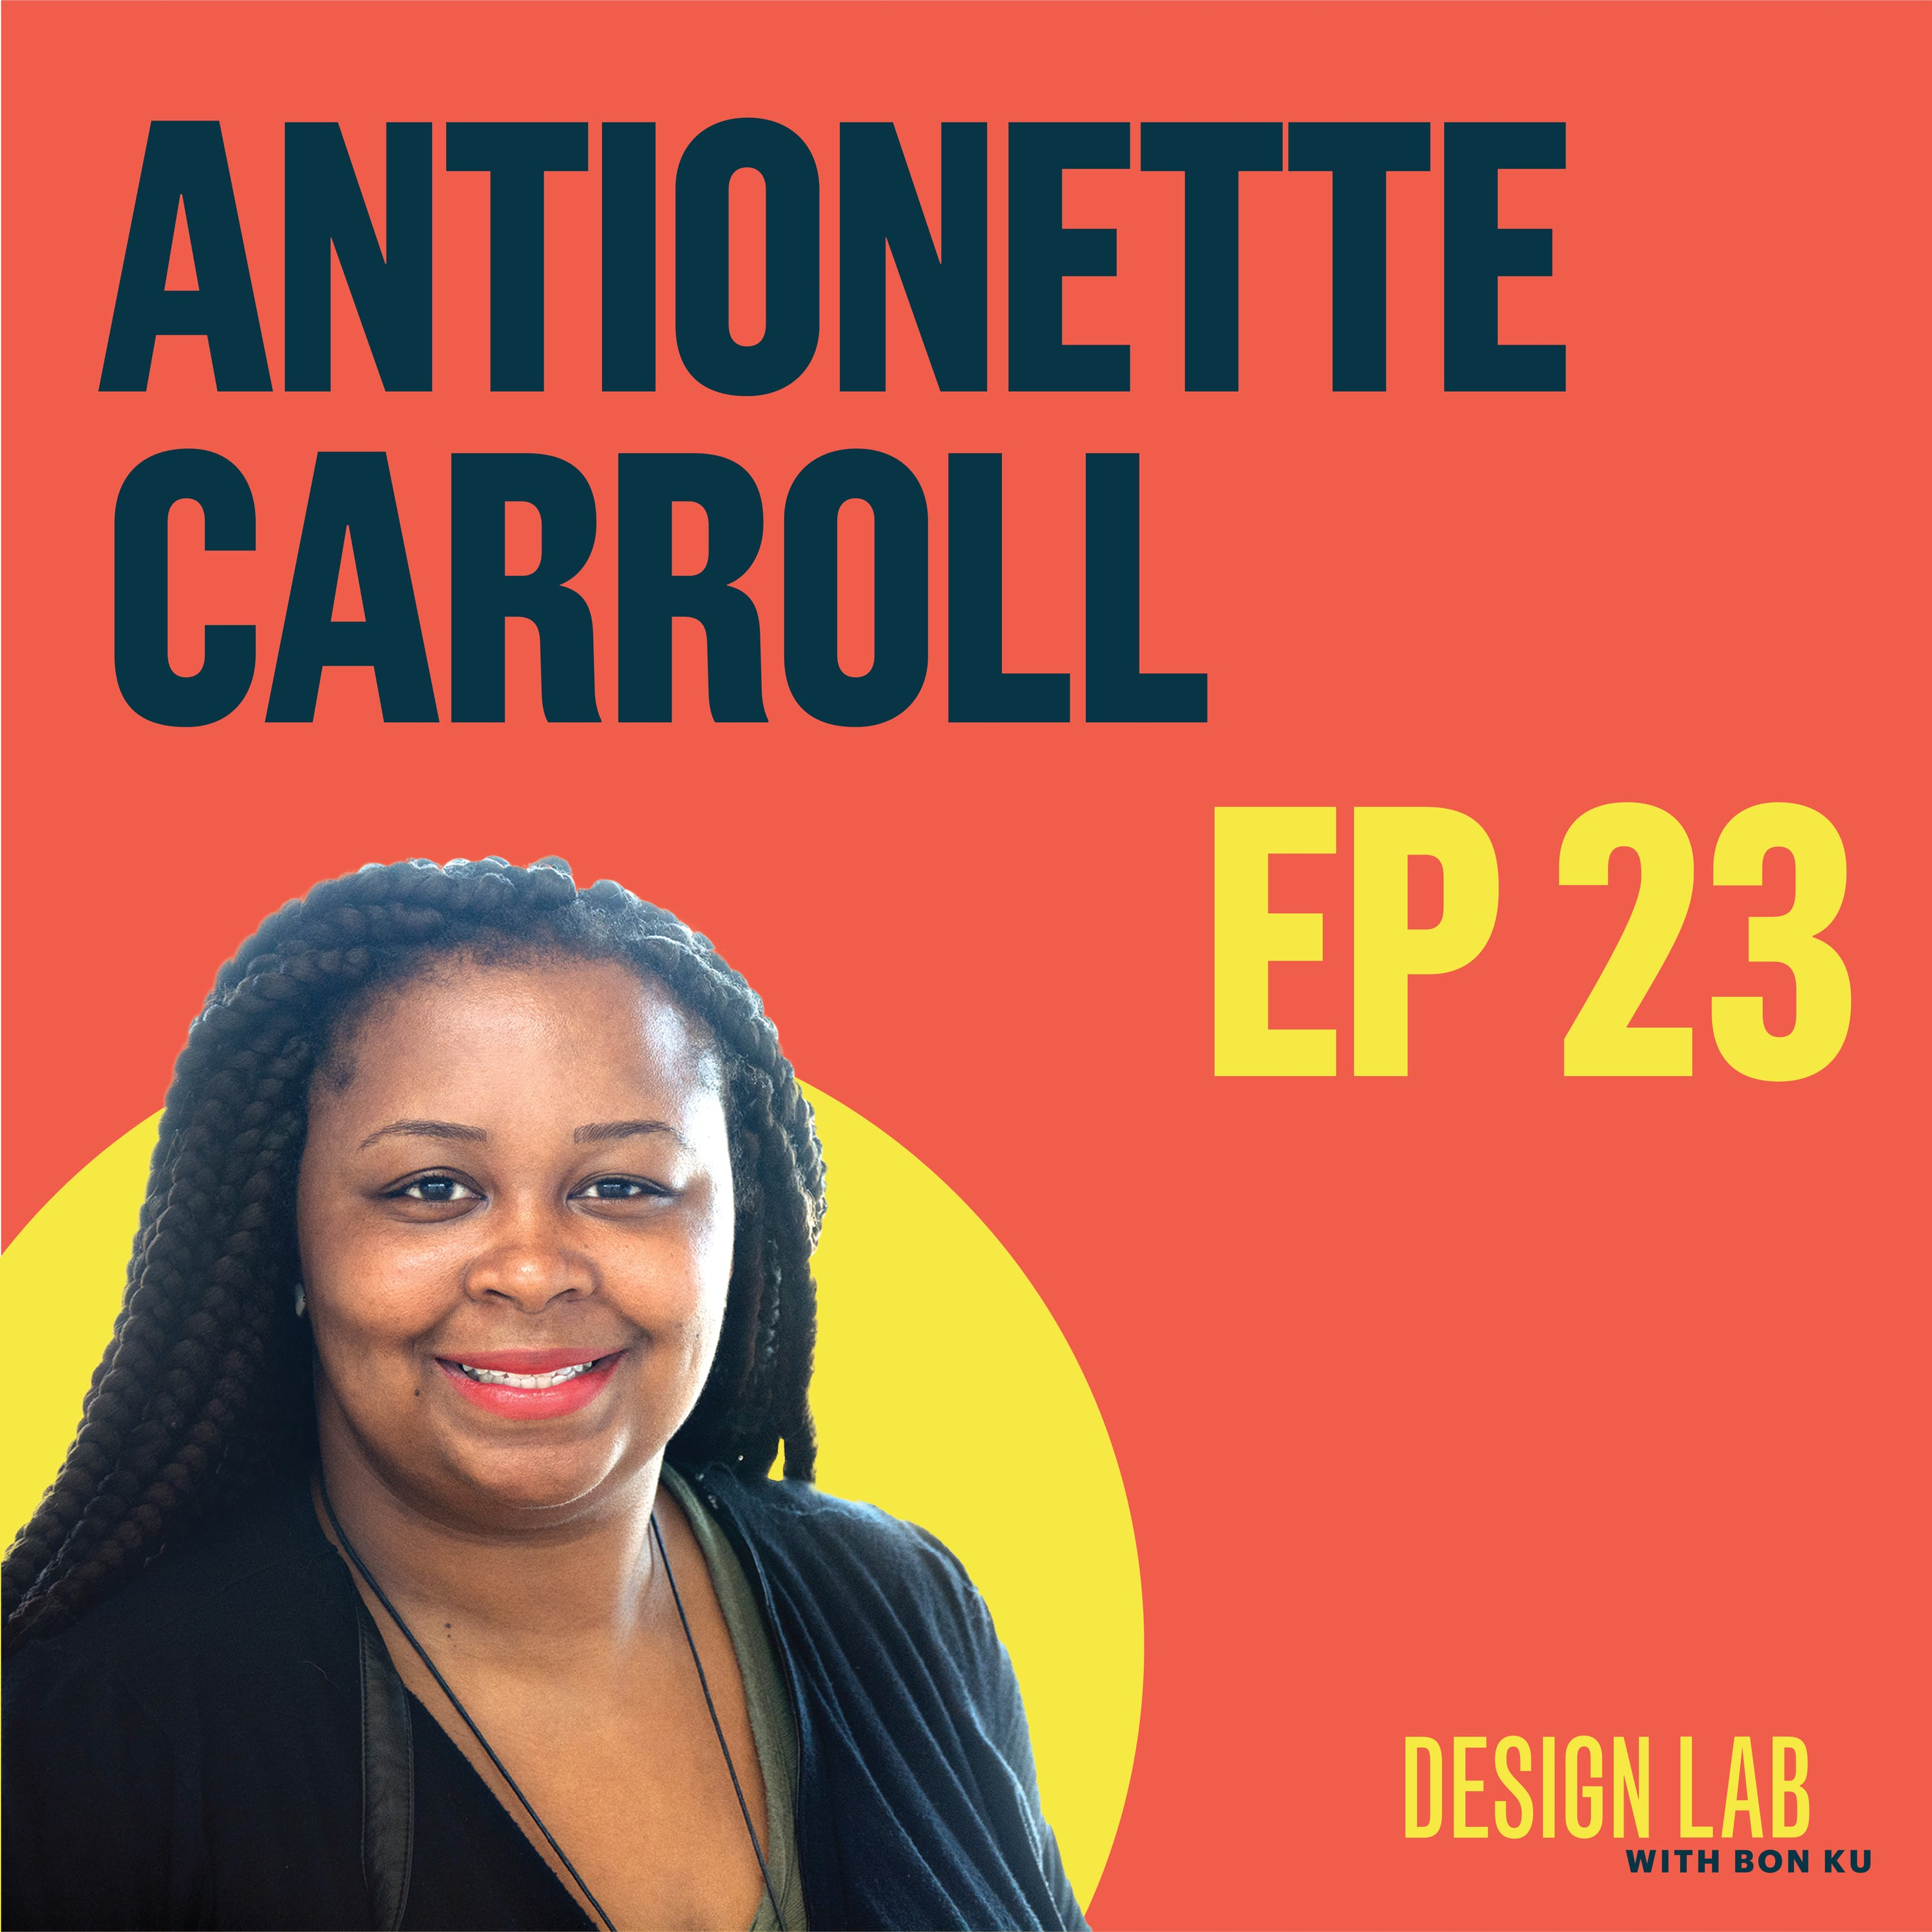 EP 23: Designing for Justice | Antionette Carroll